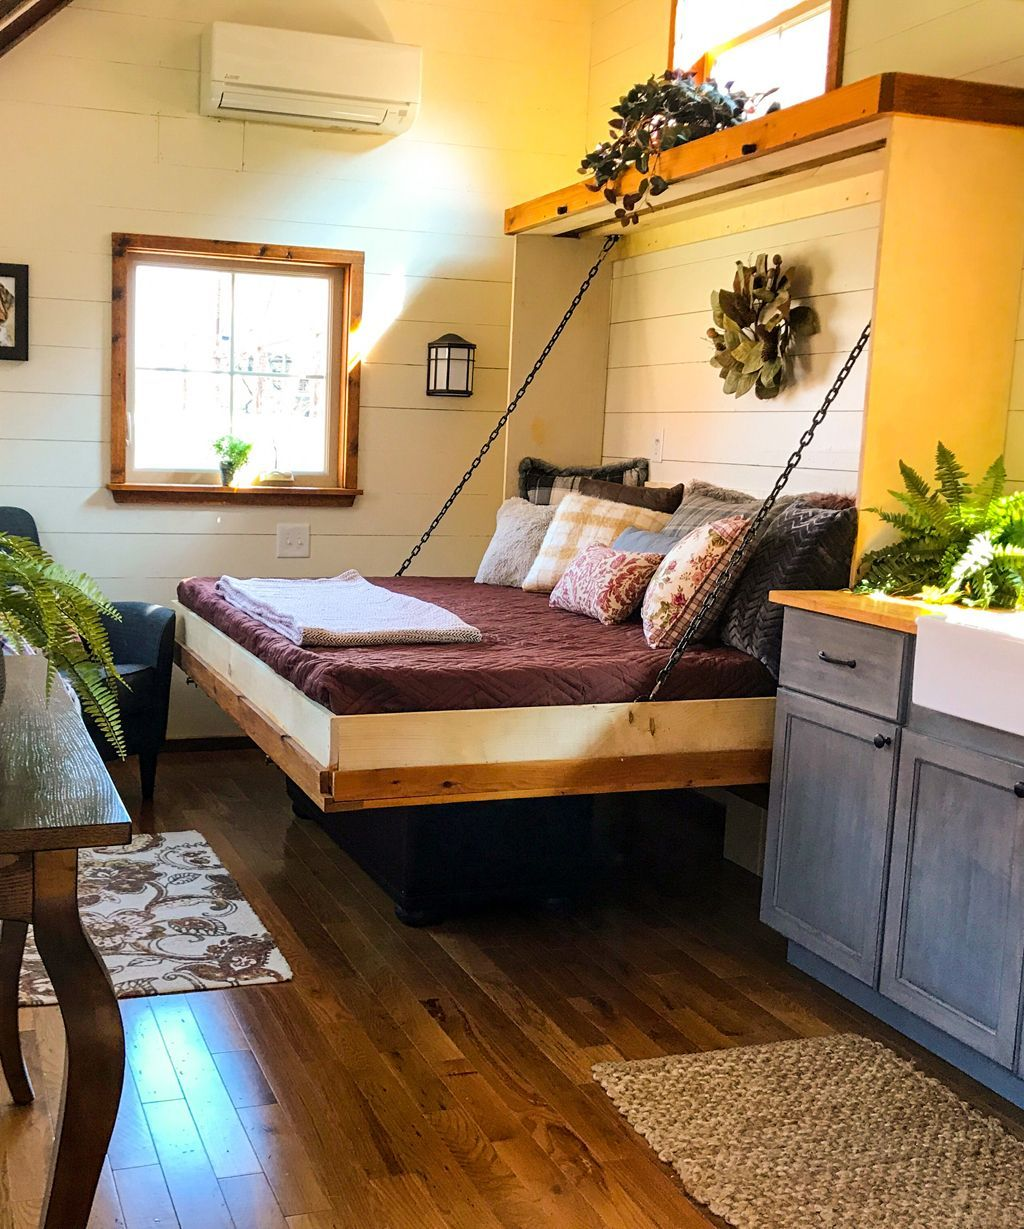 Home Storage Ideas For Small Spaces: 20 Smart Tiny House Storage And Organizing Ideas